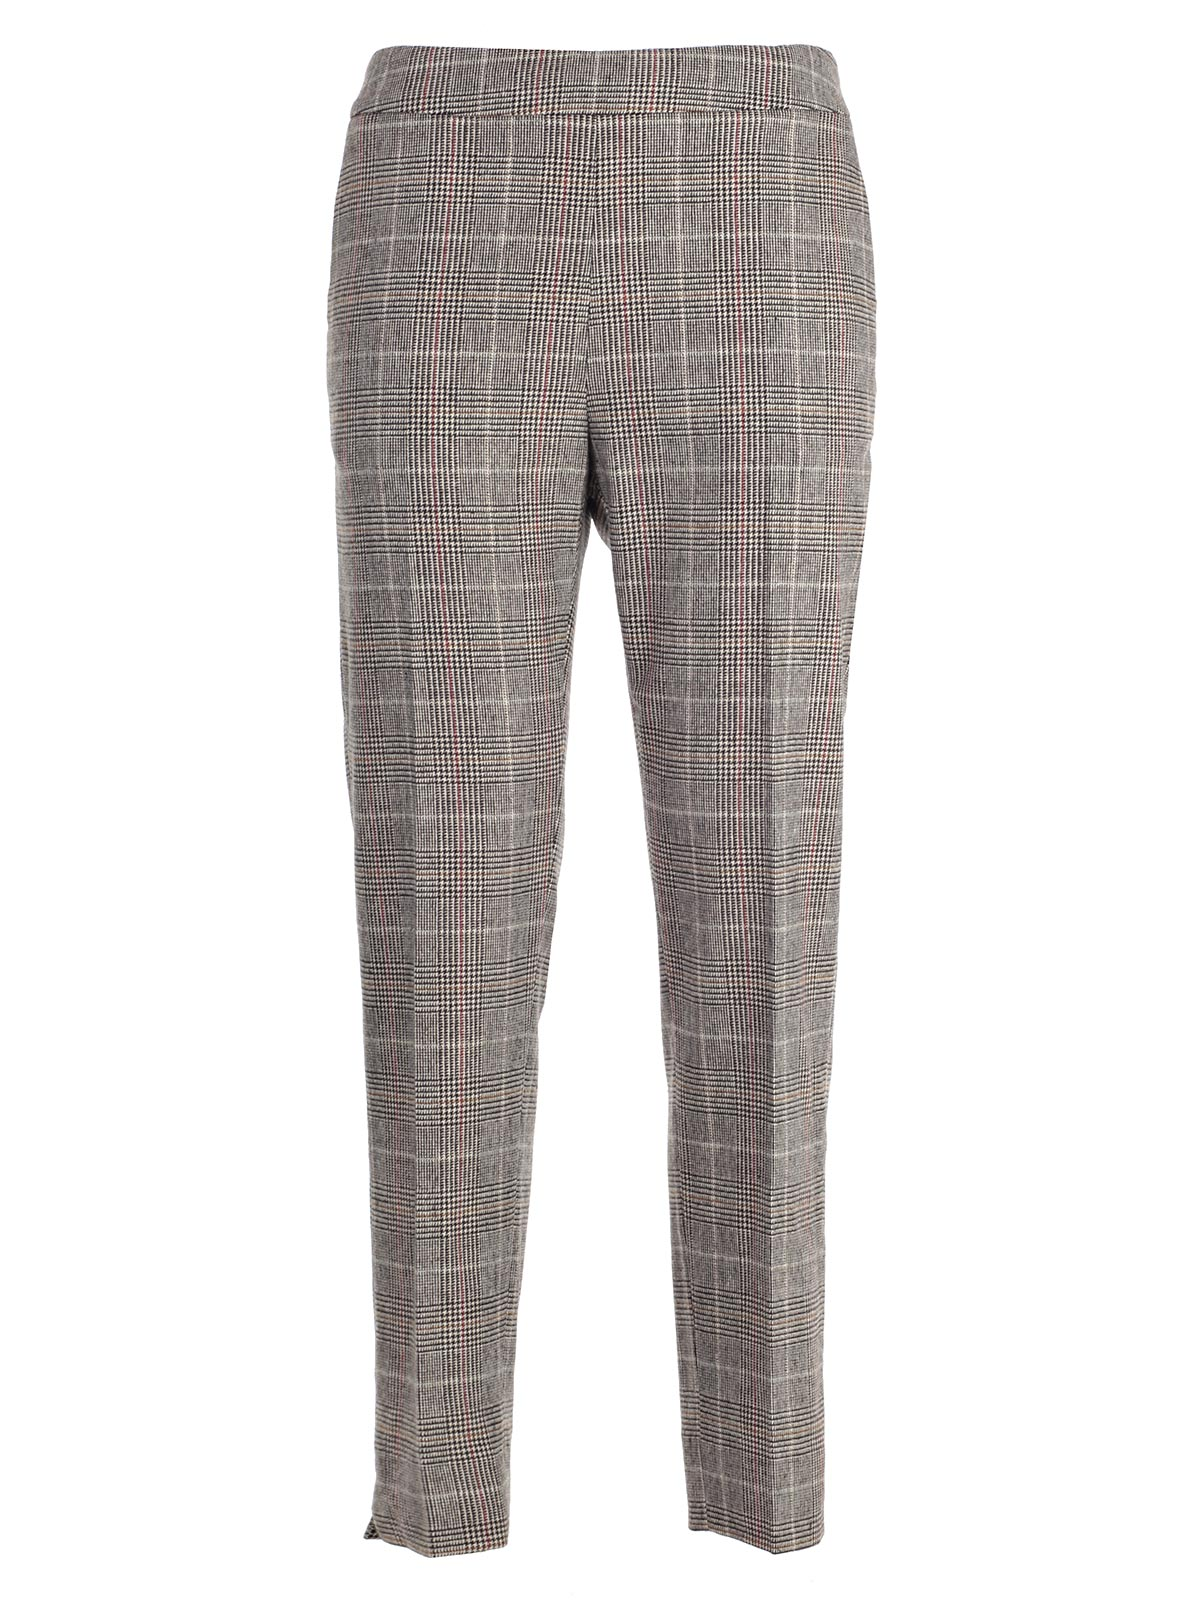 Picture of I'M ISOLA MARRAS TROUSERS PANTALONE STRETTO GALLES